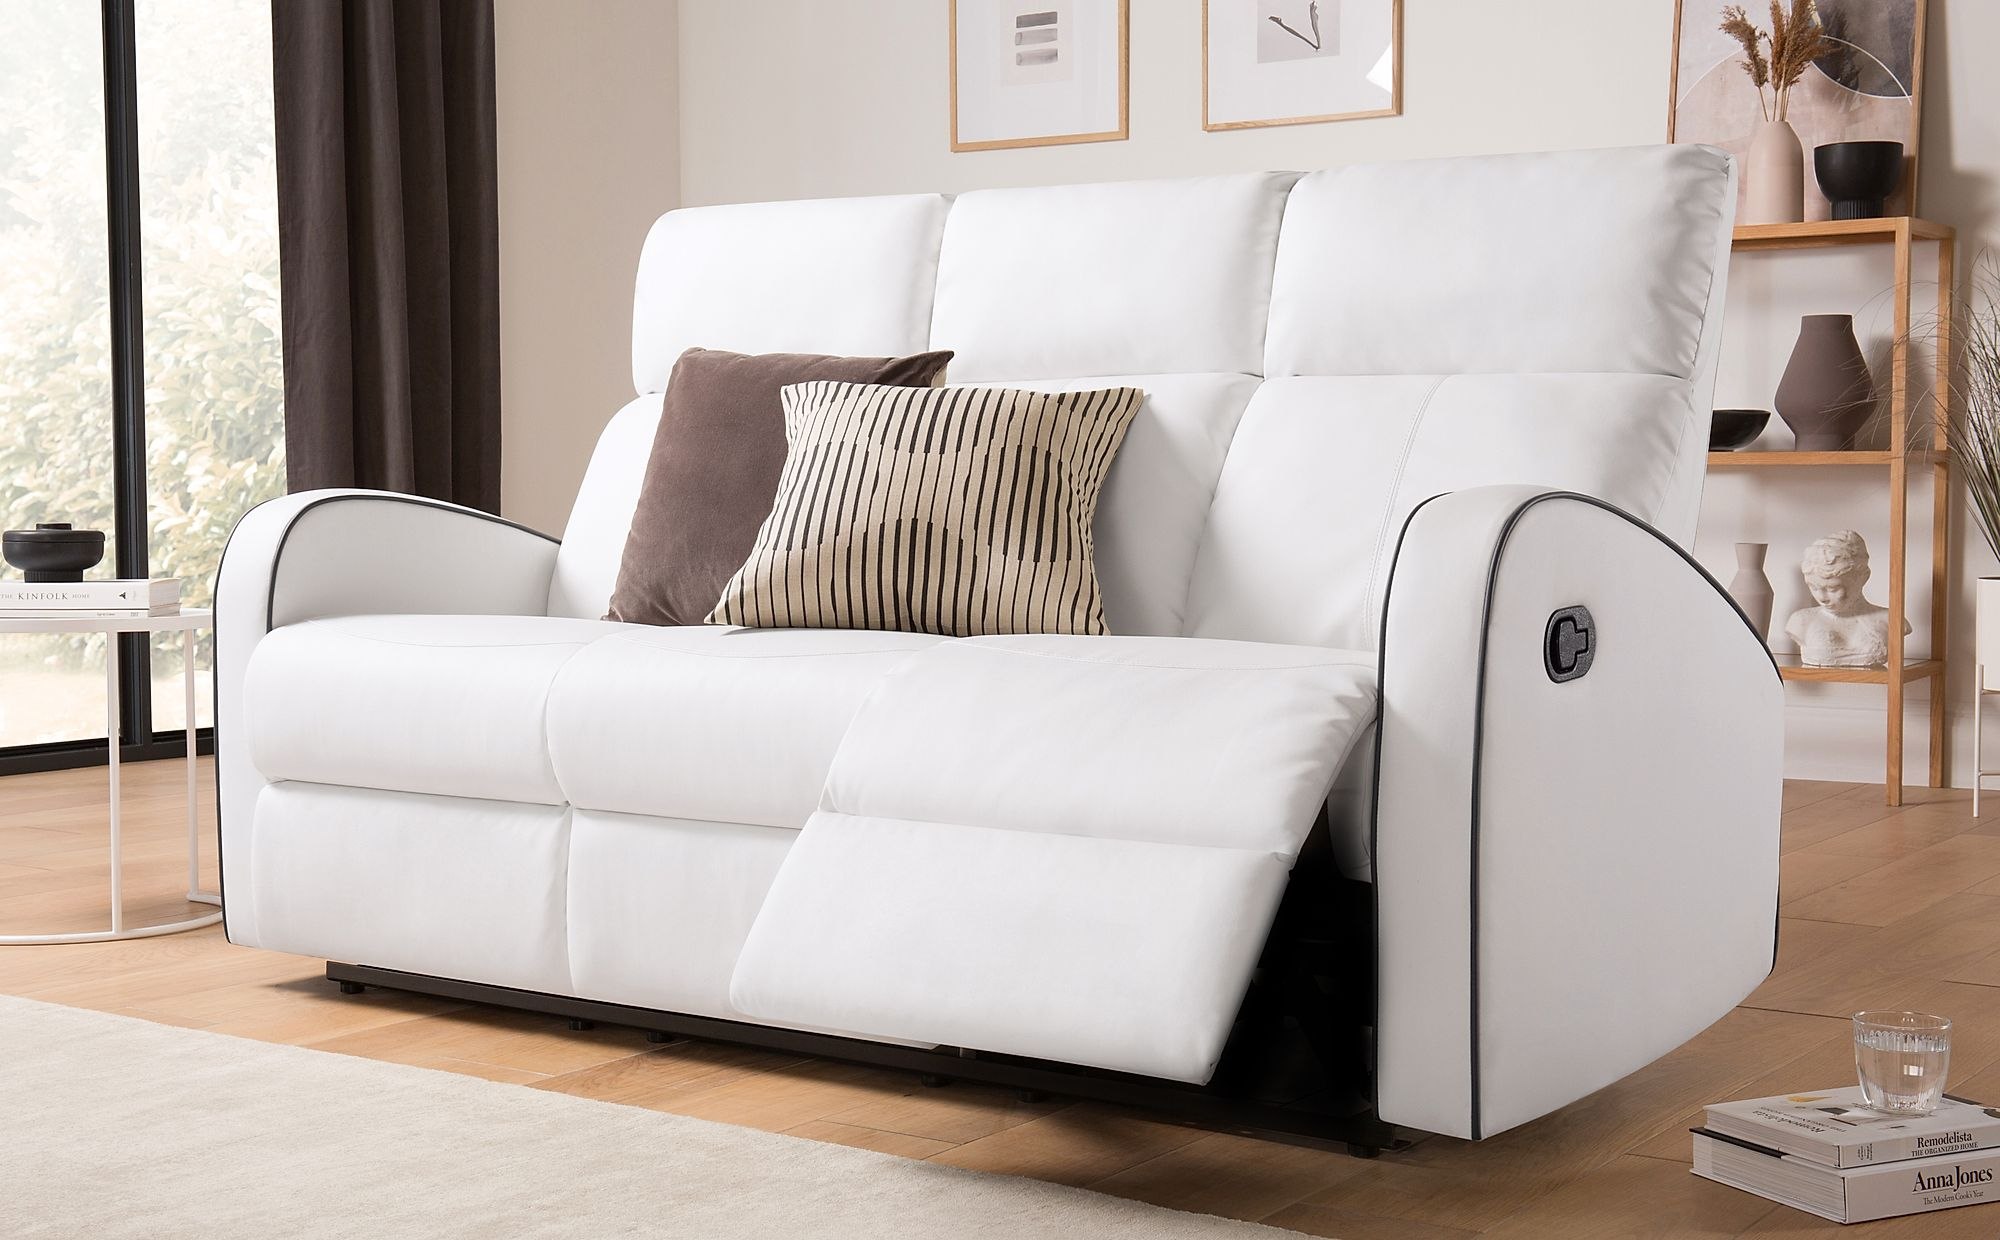 Ashby White Leather 3 Seater Recliner Sofa | Furniture Choice For 3 Seater Leather Sofas (View 14 of 15)